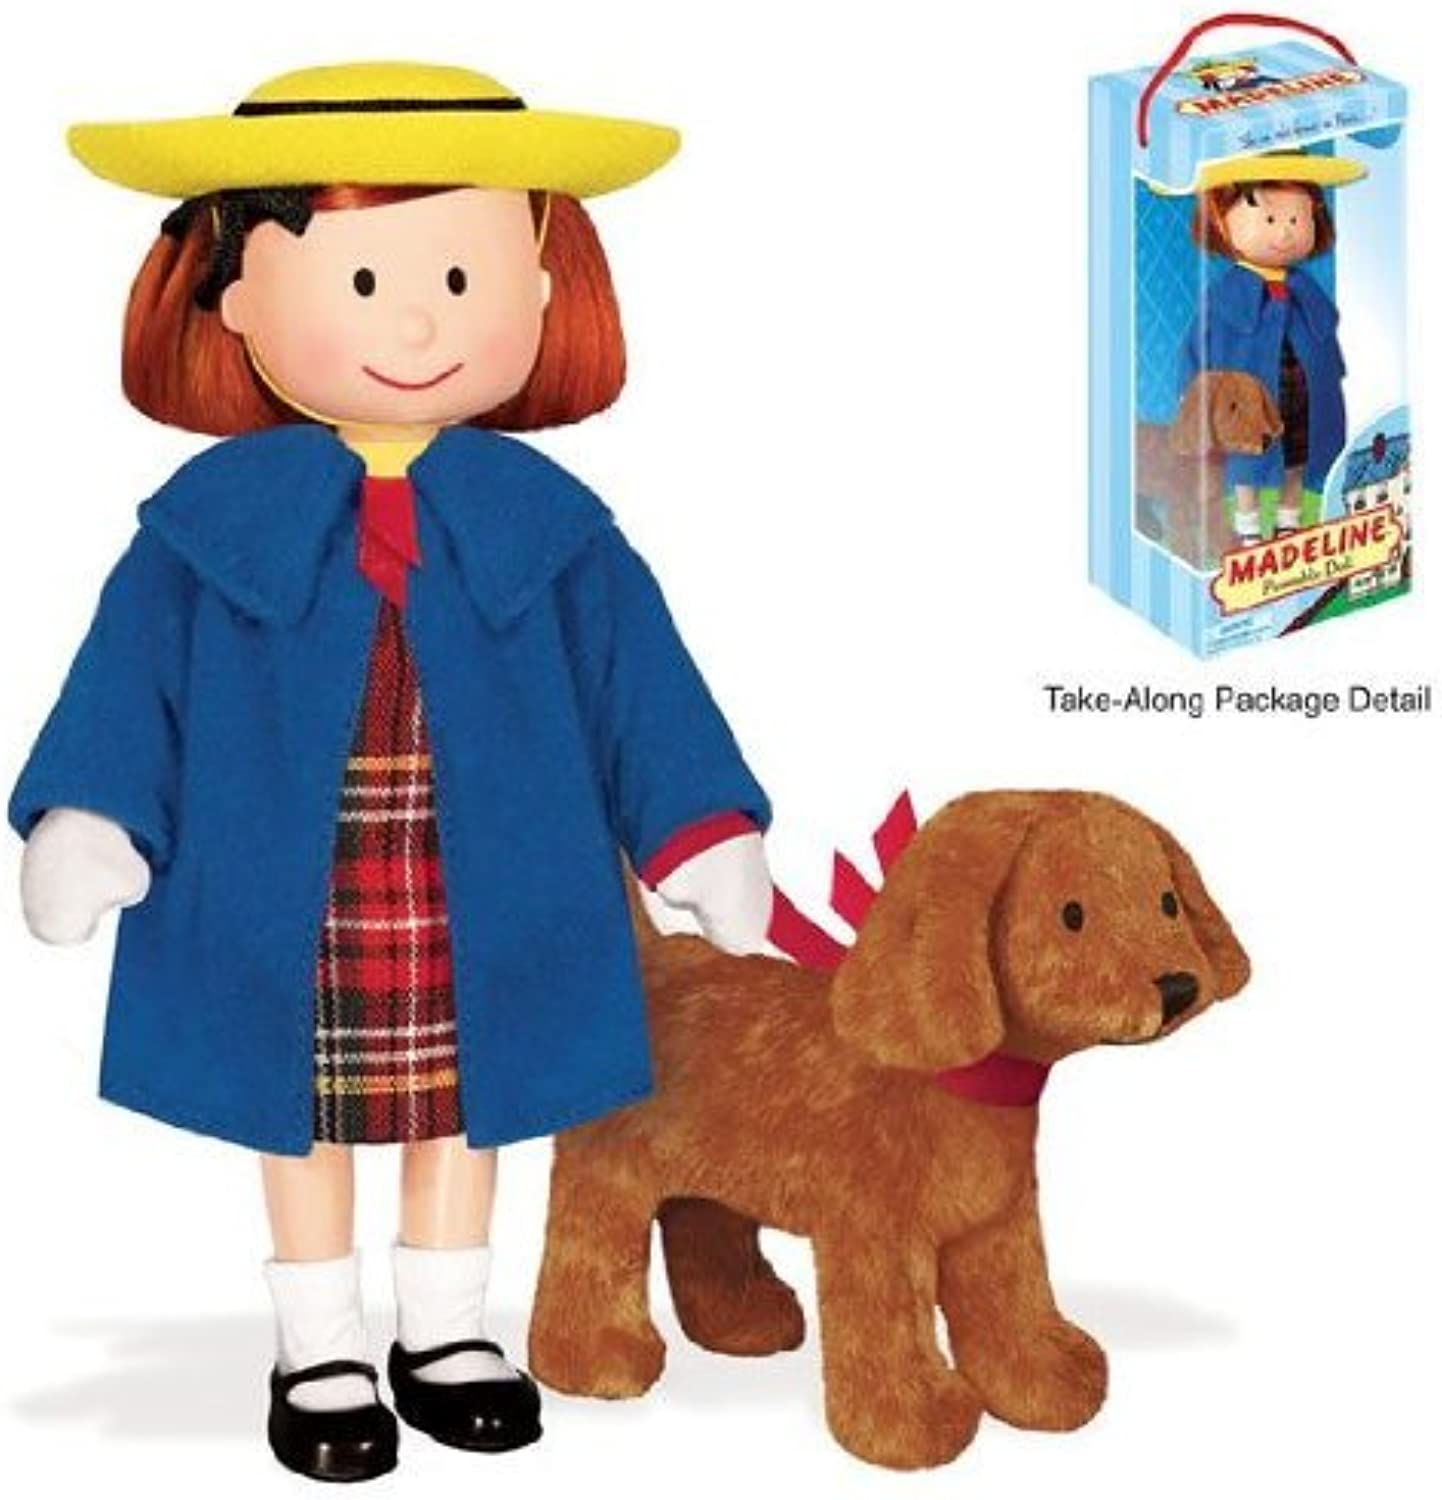 Yottoy Madeline 8 Poseable Doll w 4 Genevieve in Take-Along Pkg by YOTTOY